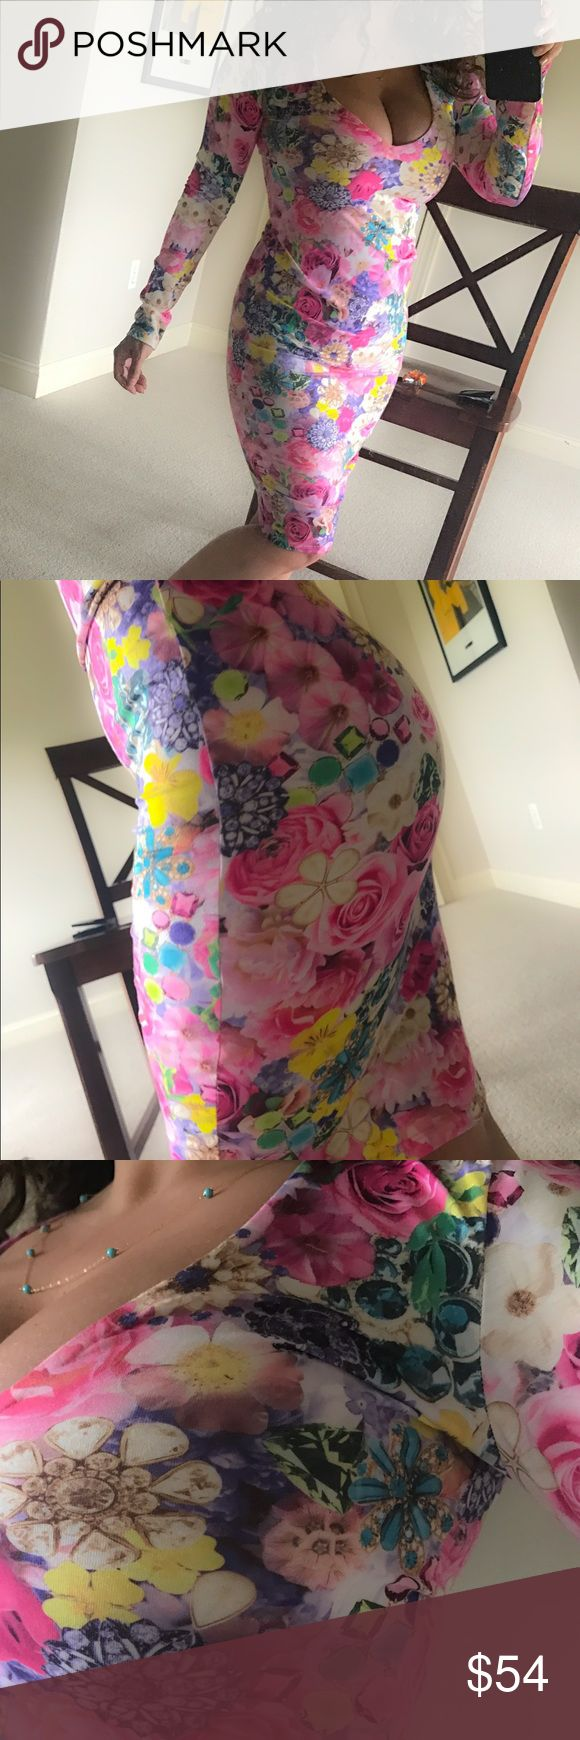 Floral  bodycon sexy dress tight top date Night 💐 Sexy floral bodycon dress 💕💕💕 fits like a glove in the most flattering way 😍 US size 4 but I think it fits like a size 2-3 💕💕💕 preowned good condition.. one of my faves but hardly wear it anymore 💐💐💐💐💐 ASOS Dresses